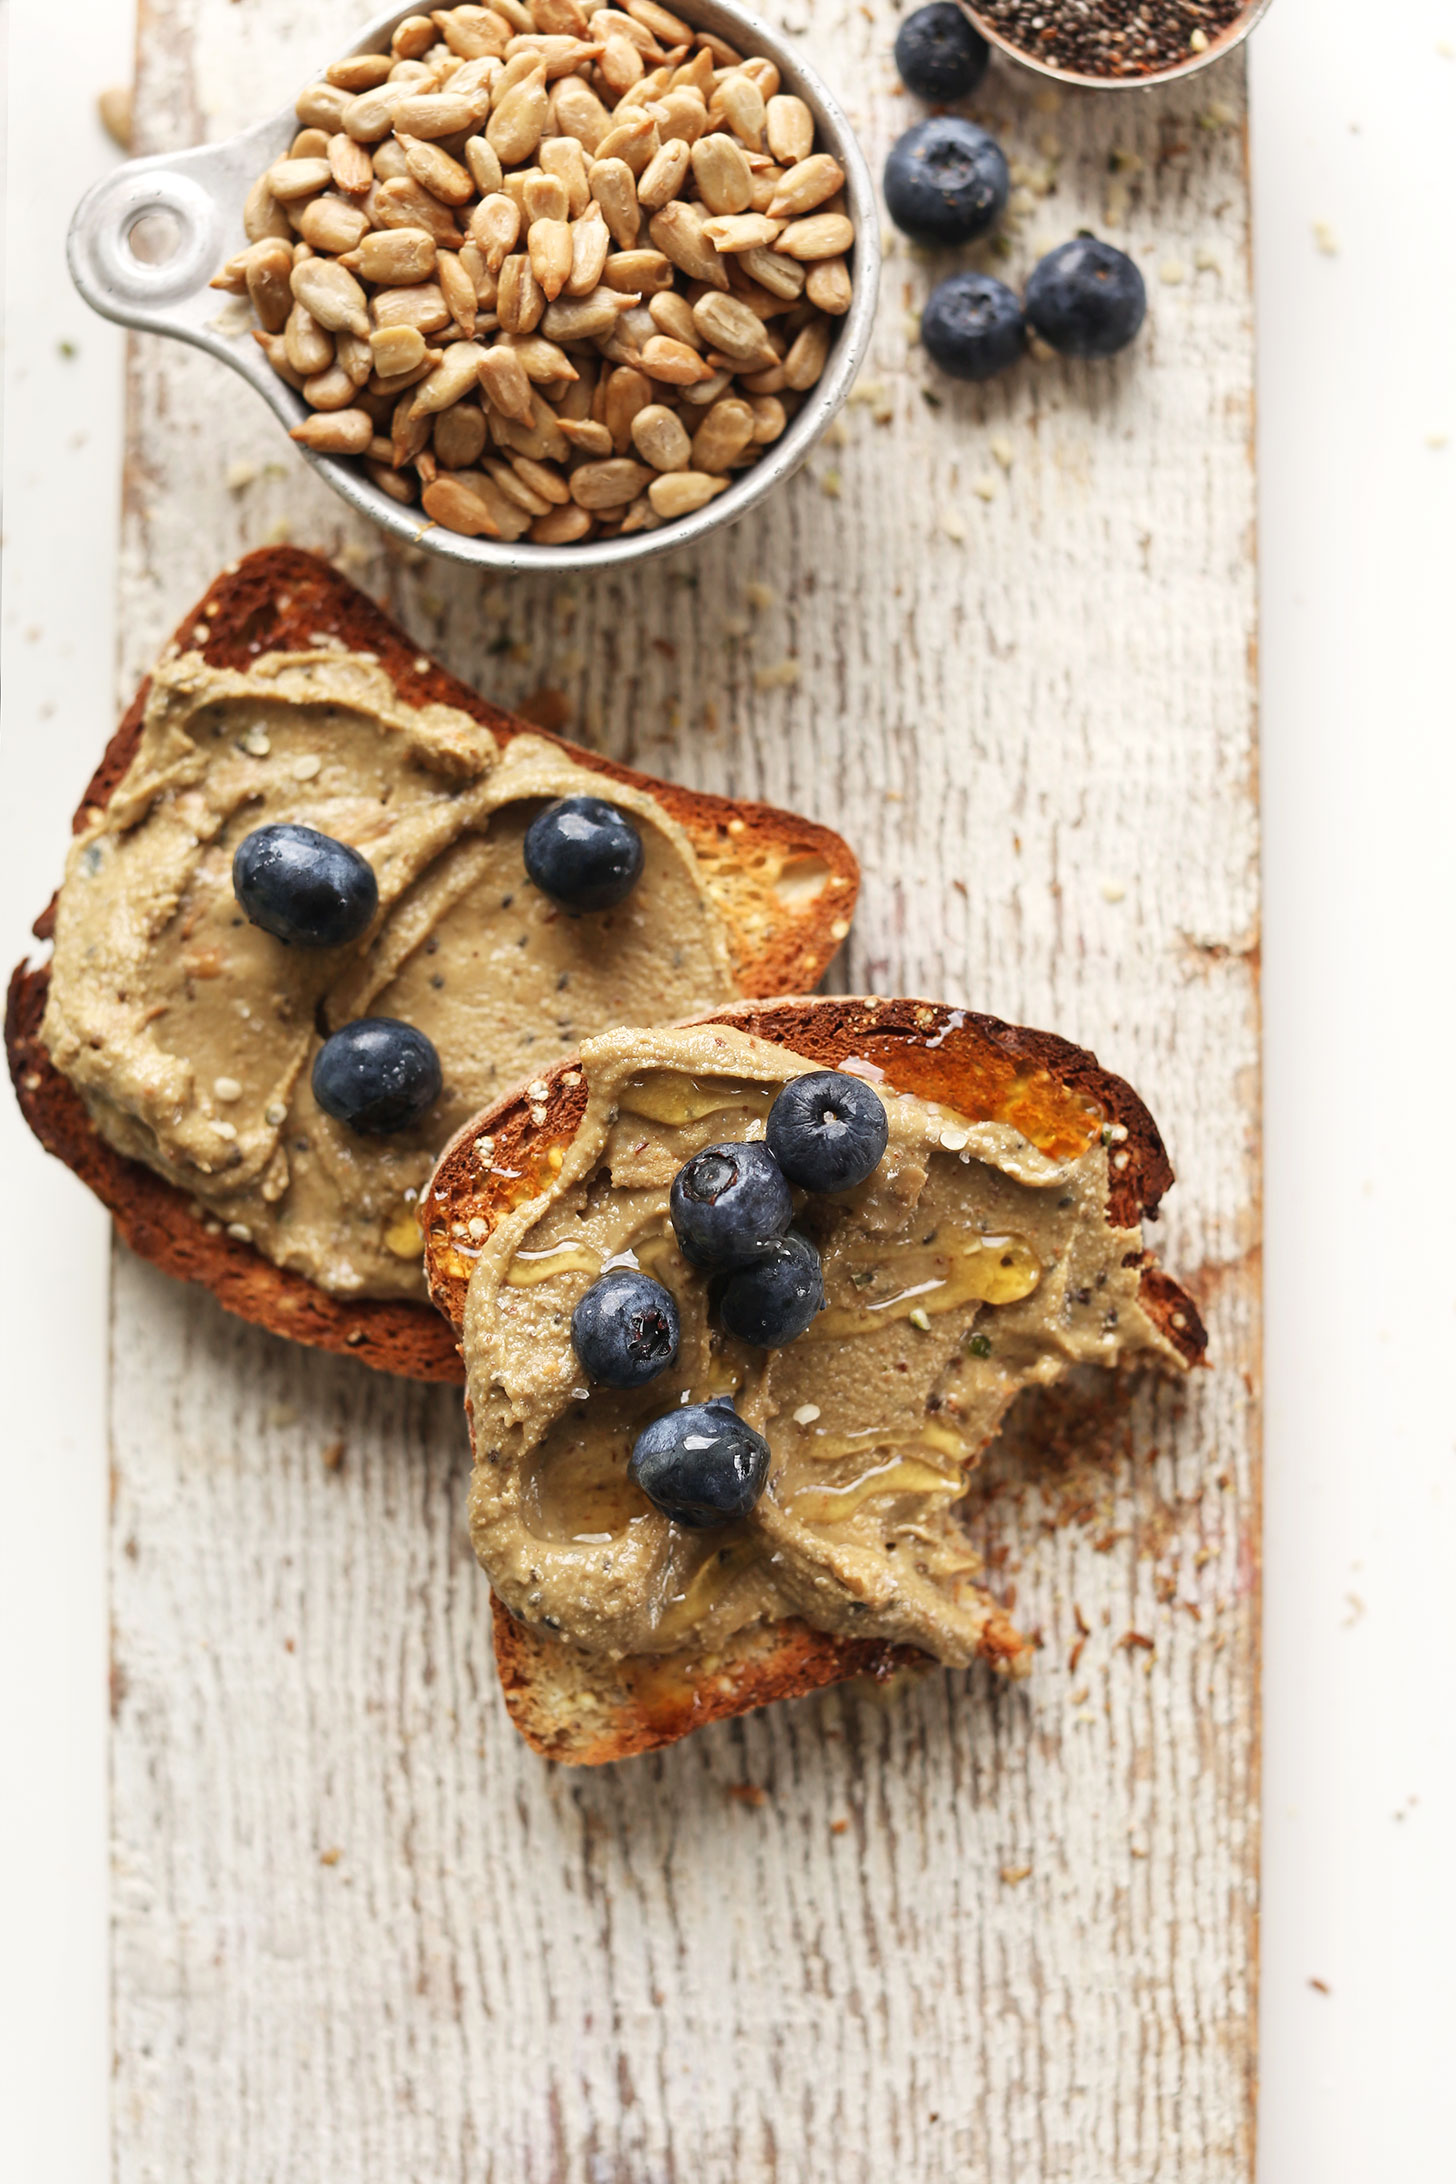 Partially eaten gluten-free toast topped with our Sunflower Seed Butter recipe